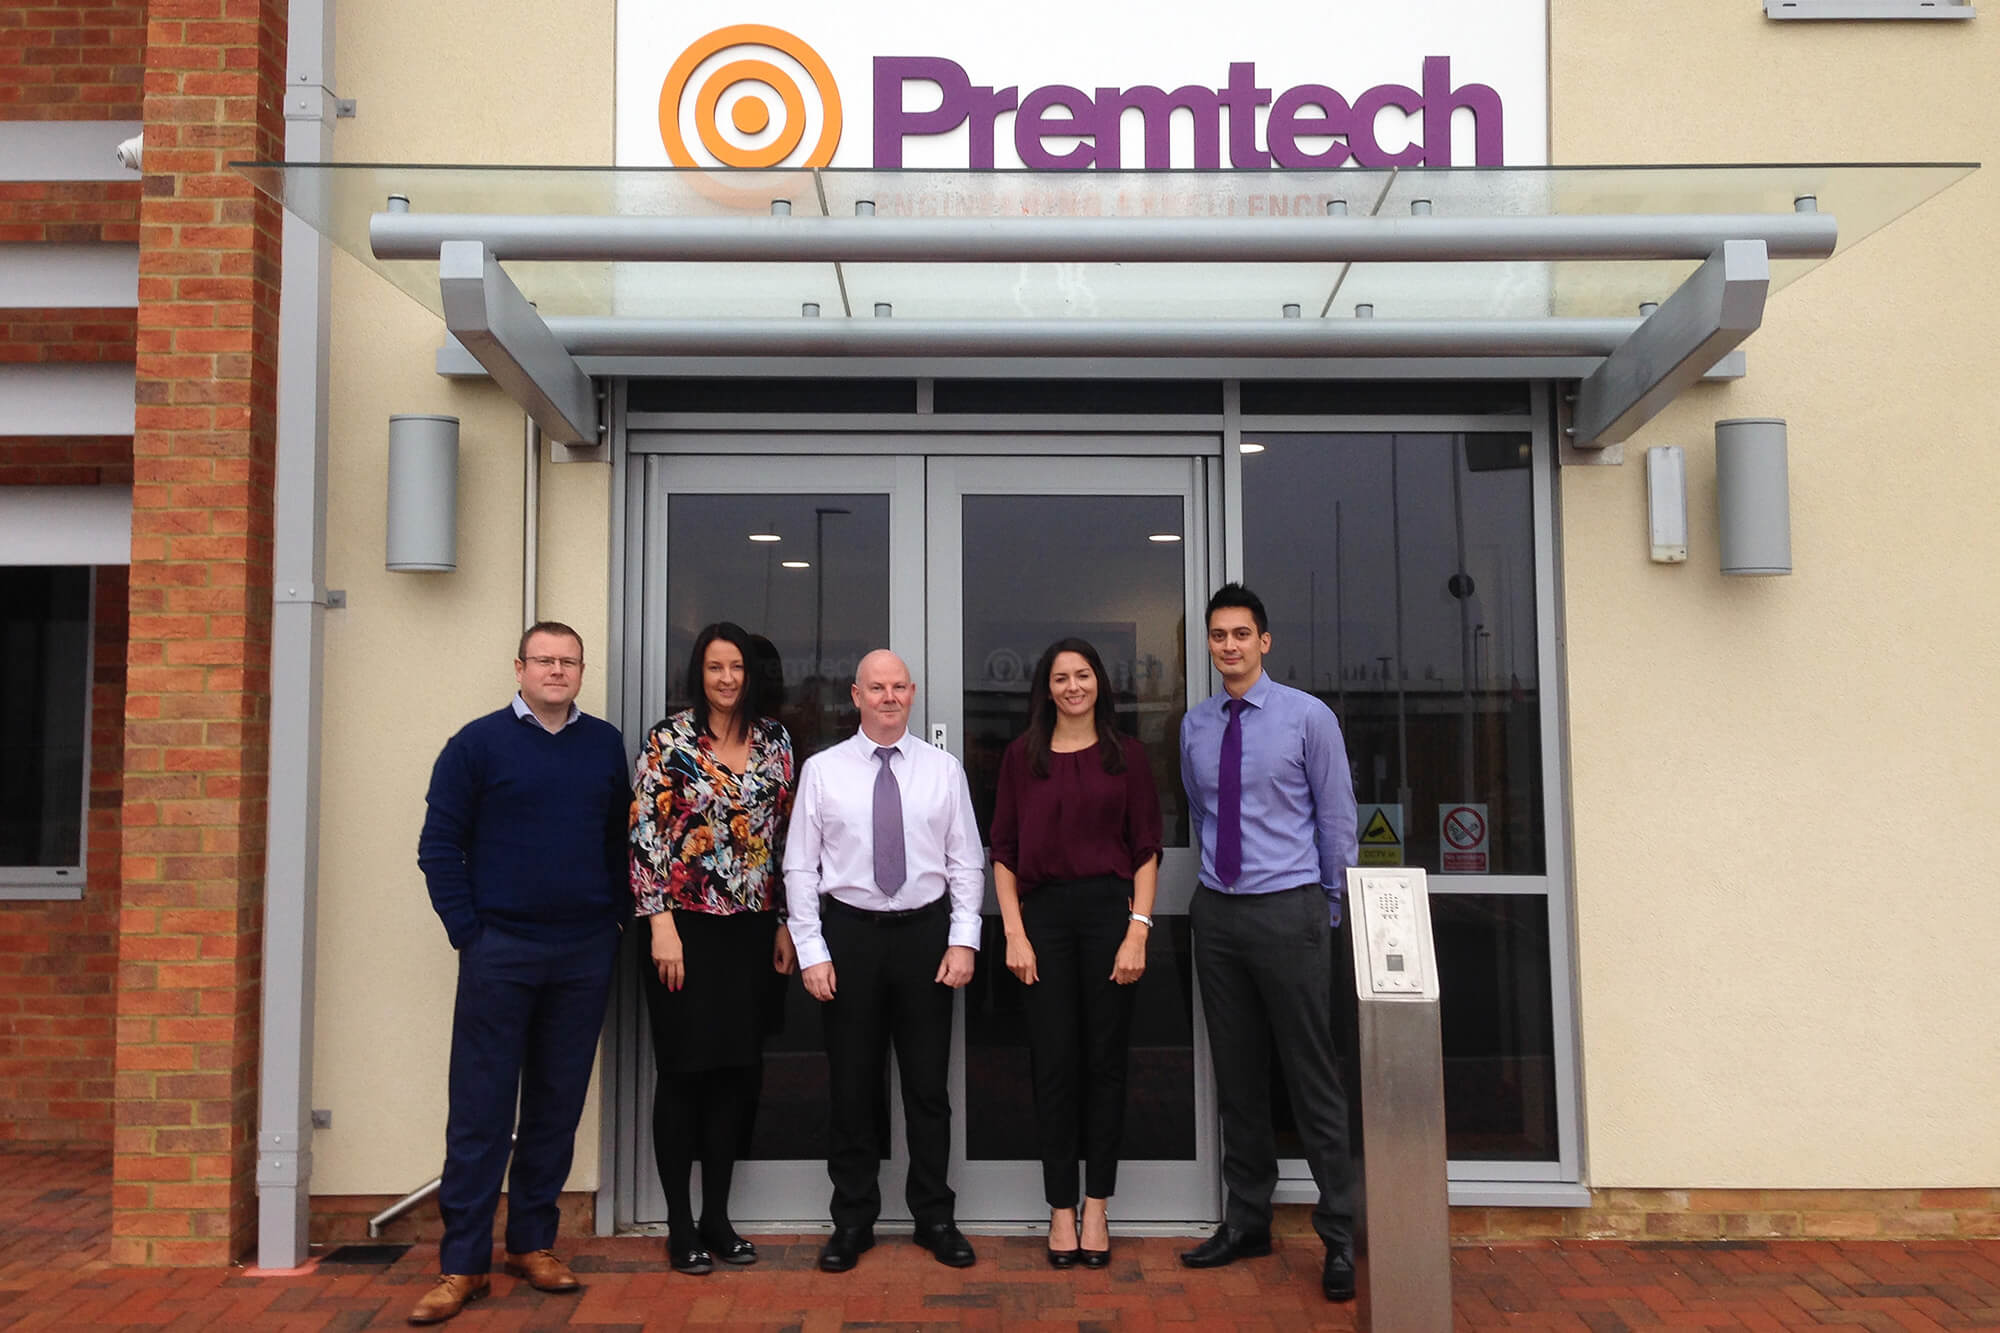 Premtech staff stand outside their office building